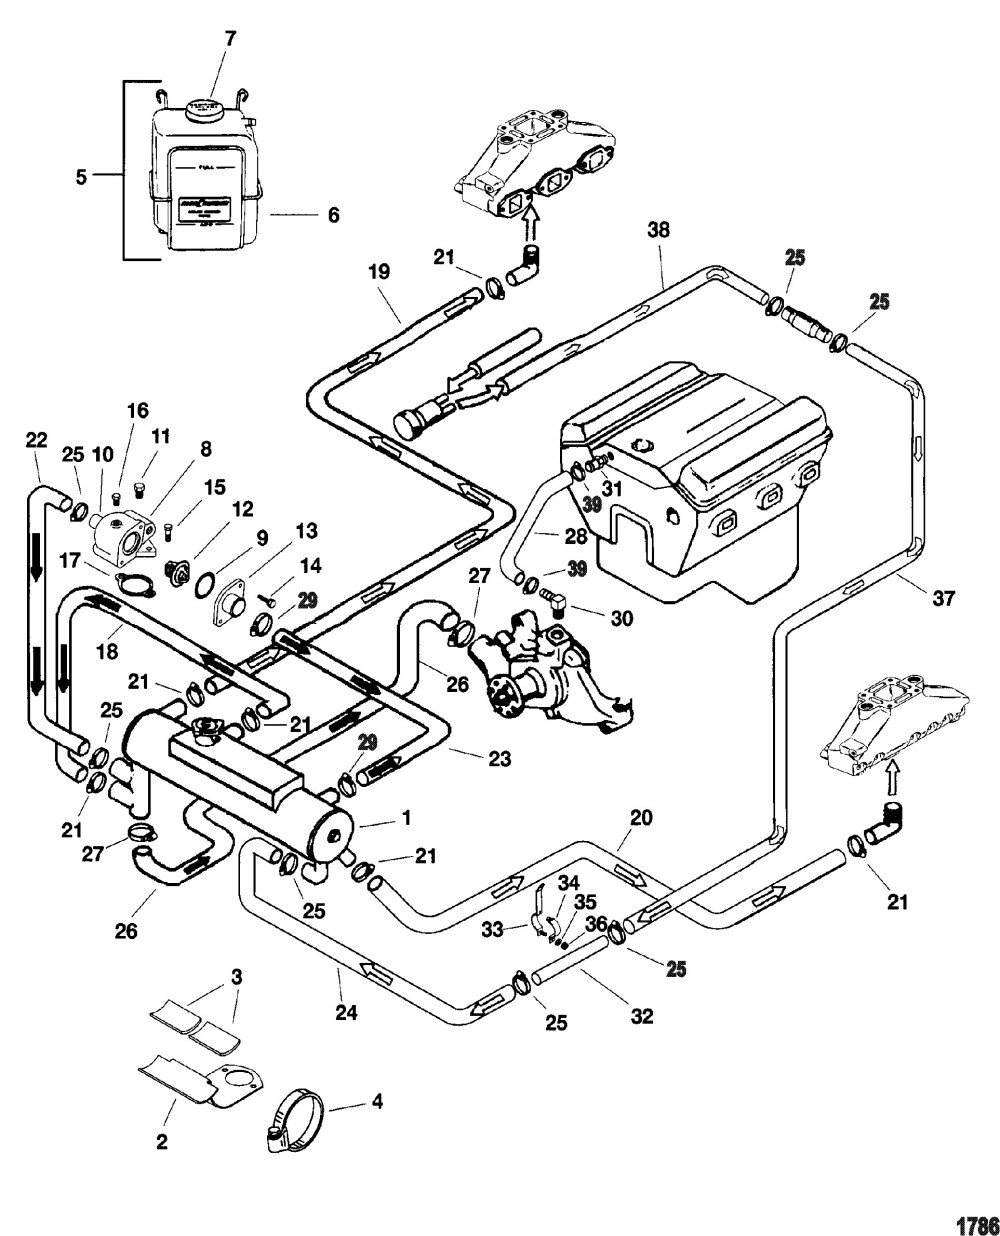 medium resolution of chrysler 3 8 engine coolant system diagram wiring diagrams scematic fuel system diagram moreover 1999 chrysler 300m fuel line diagram